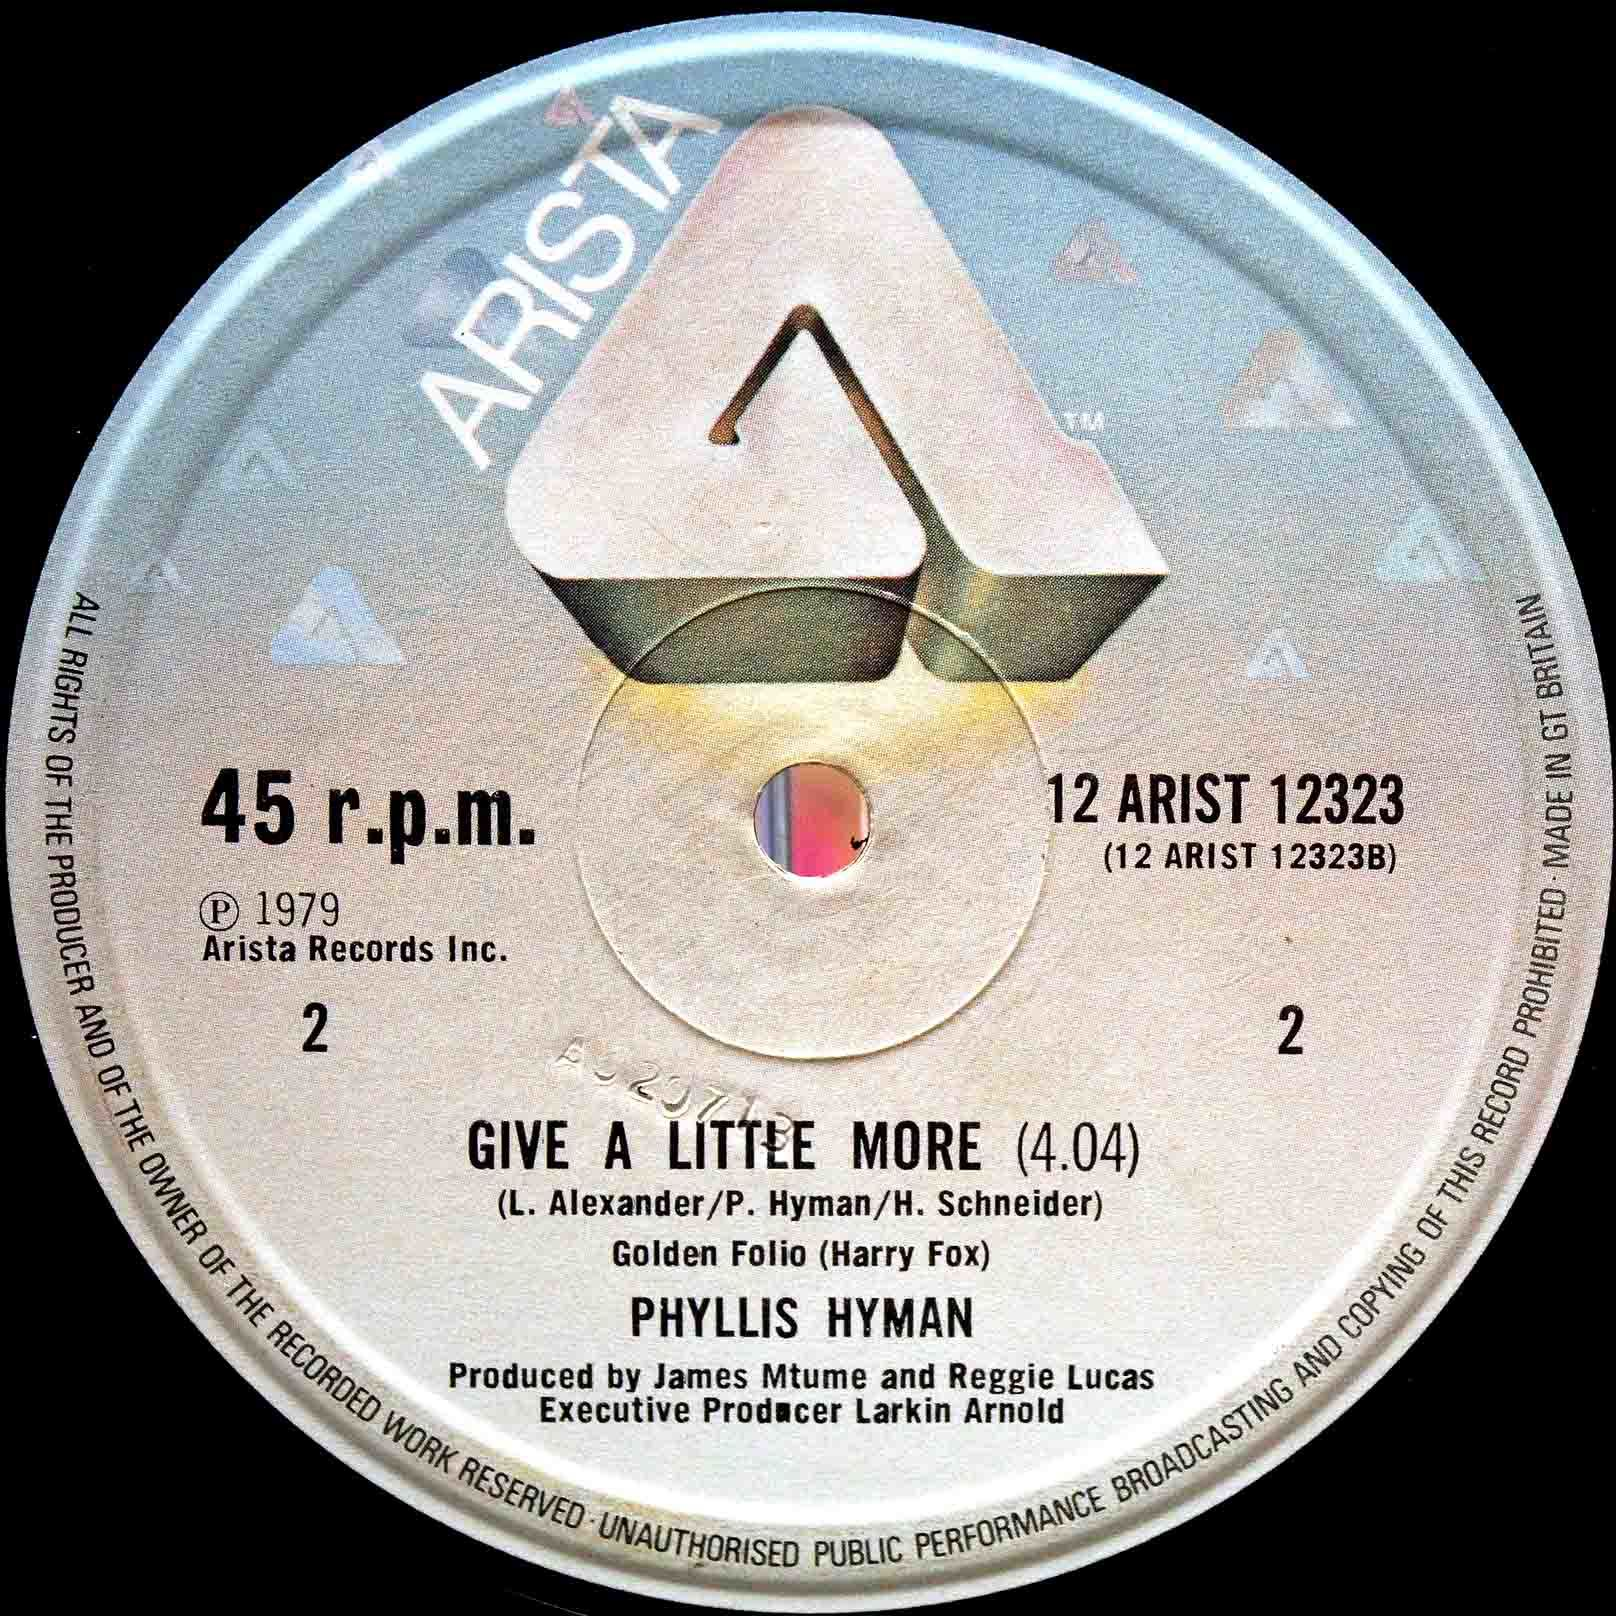 Phyllis Hyman – You Know How To Love Me 04